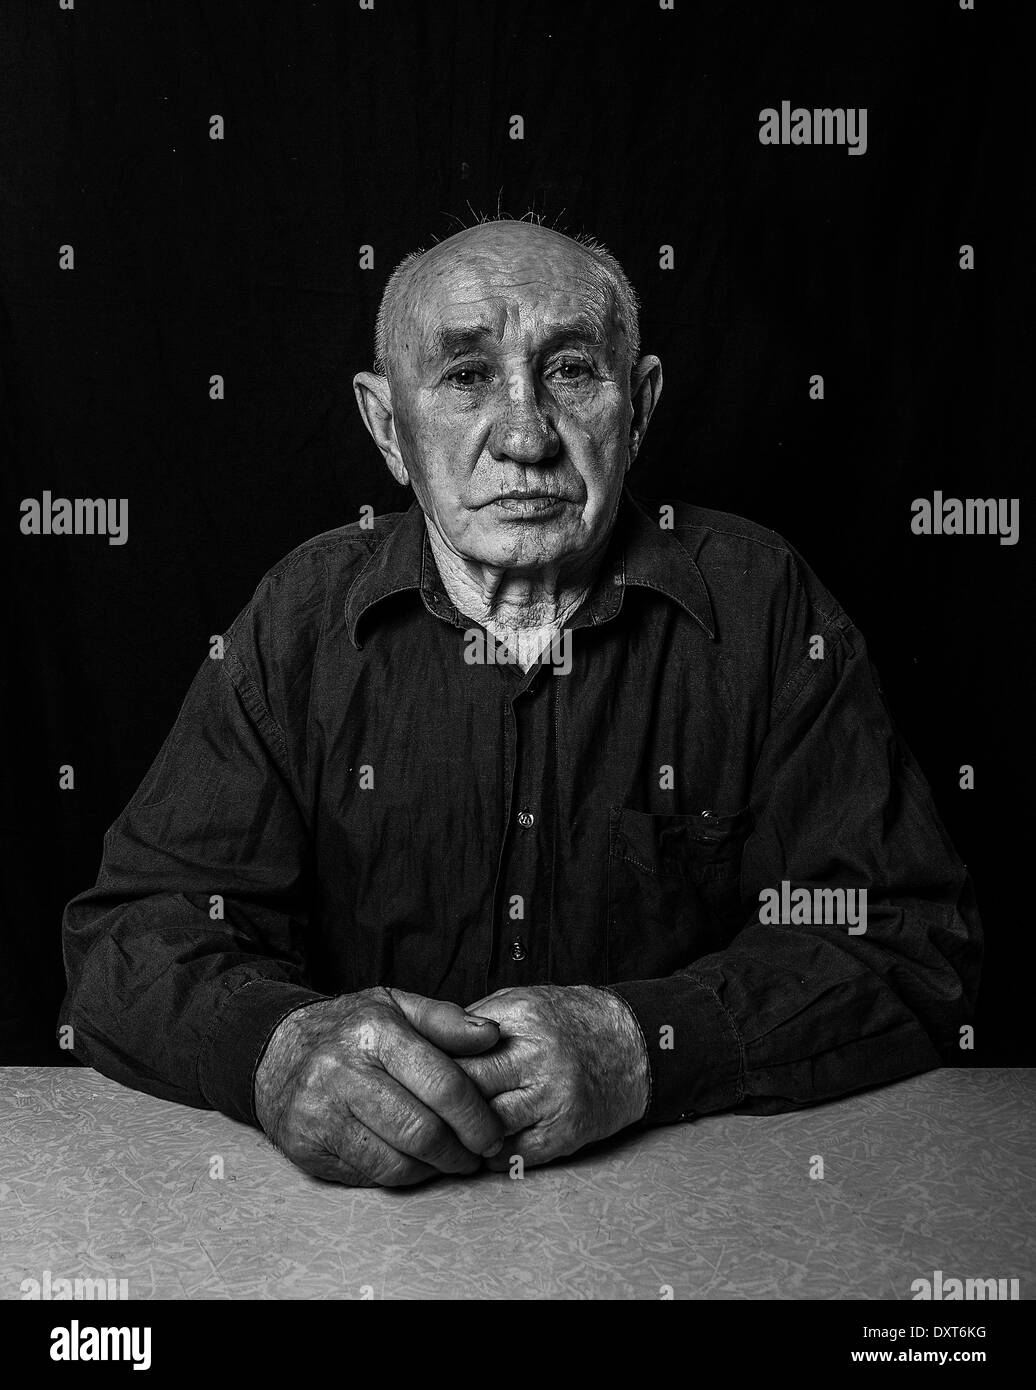 Artistic portrait of an old man - Stock Image